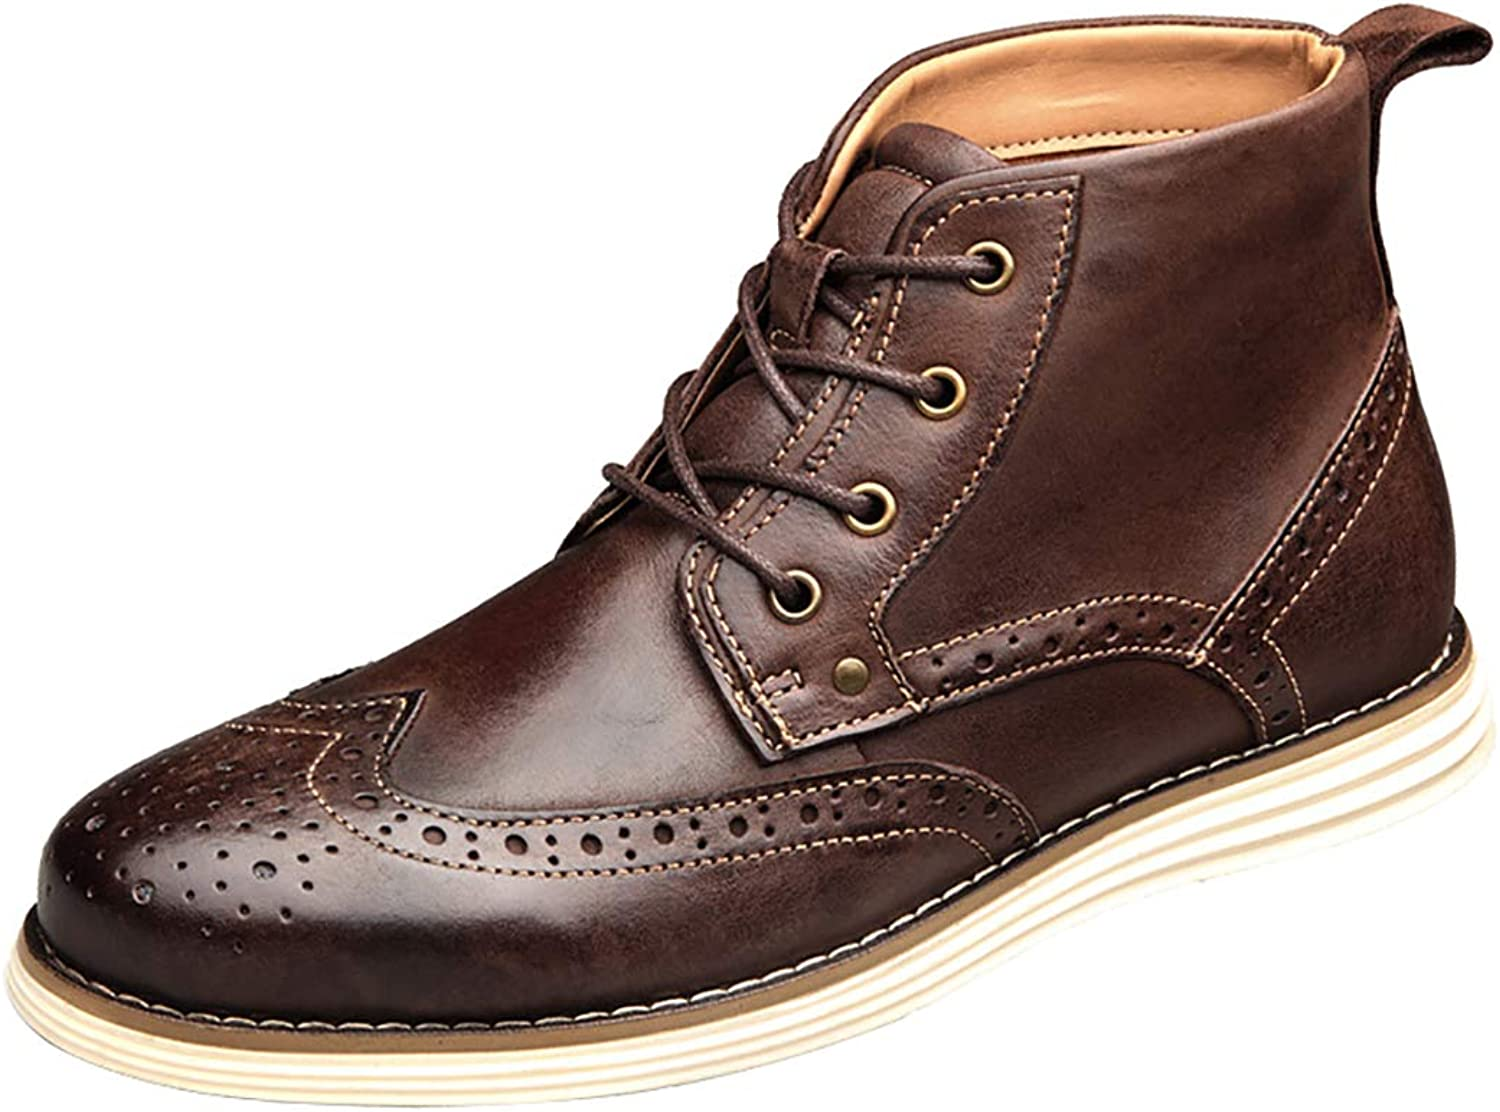 Men's Brogues Boot Casual High-top Leather Boots Martin boots Lace-Up Work & Safety shoes Dr Martens Unisex Adults' Boots